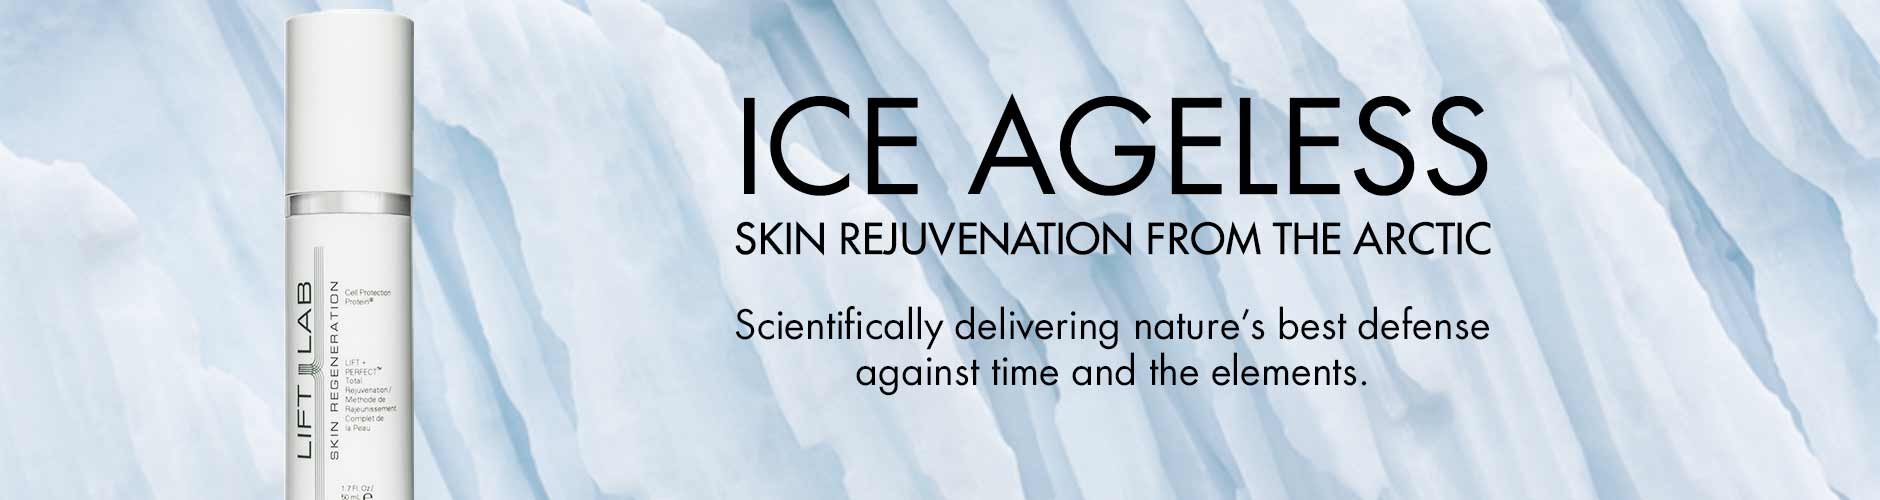 Lift Lab: Ice Ageless